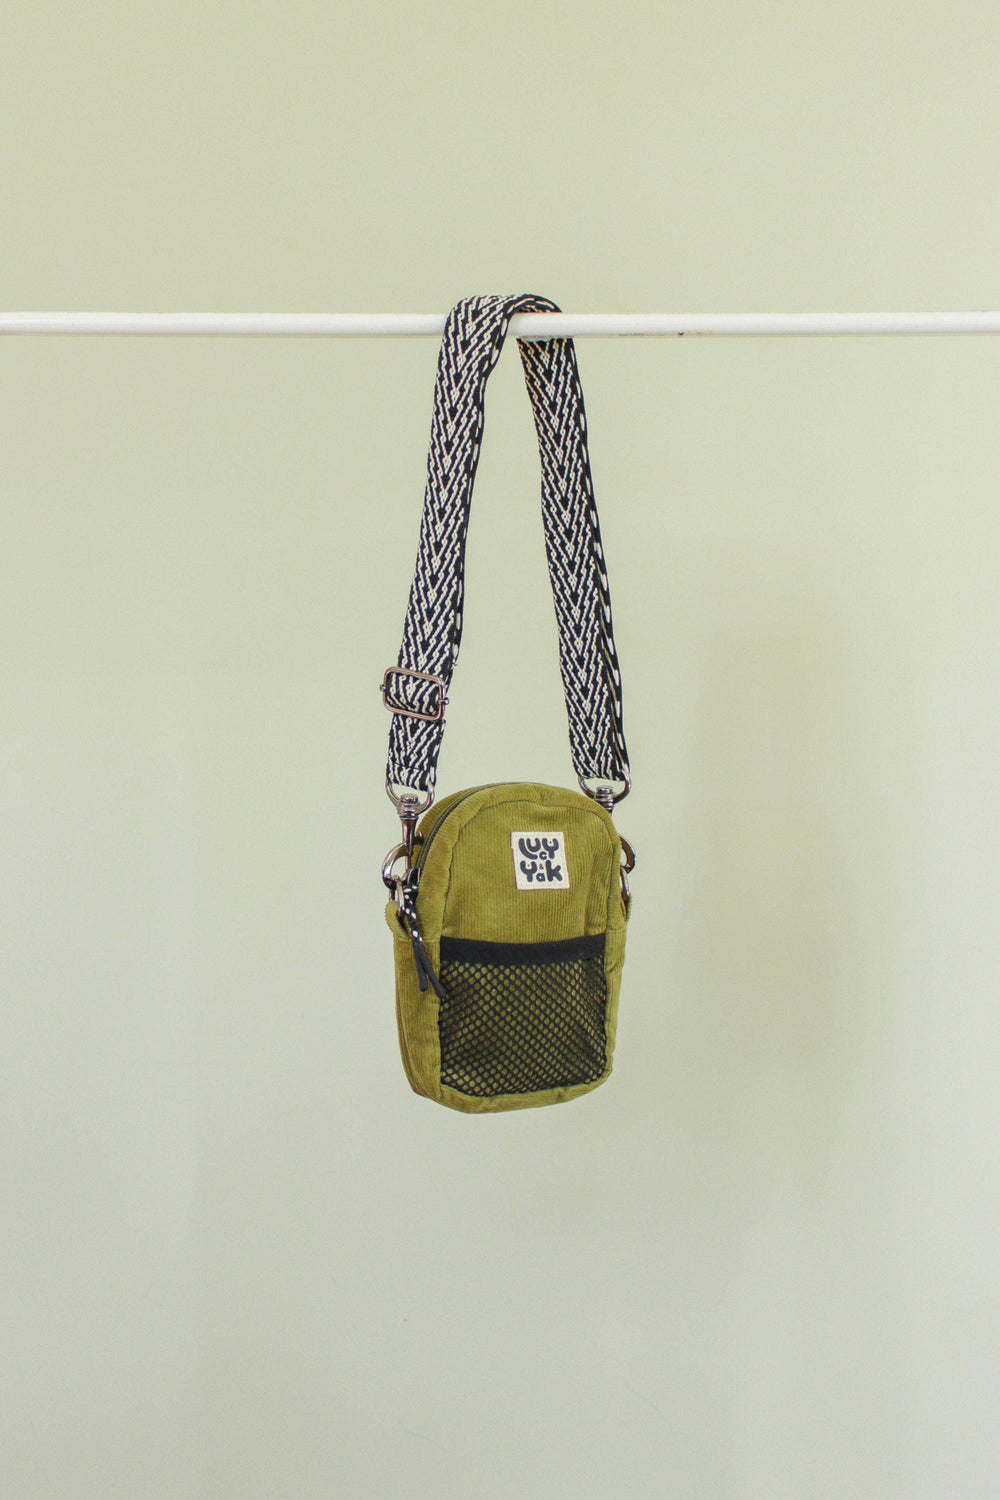 Lucy & Yak Bag 'Brady' Mini Cross Body Pouch Bag in Olive Corduroy